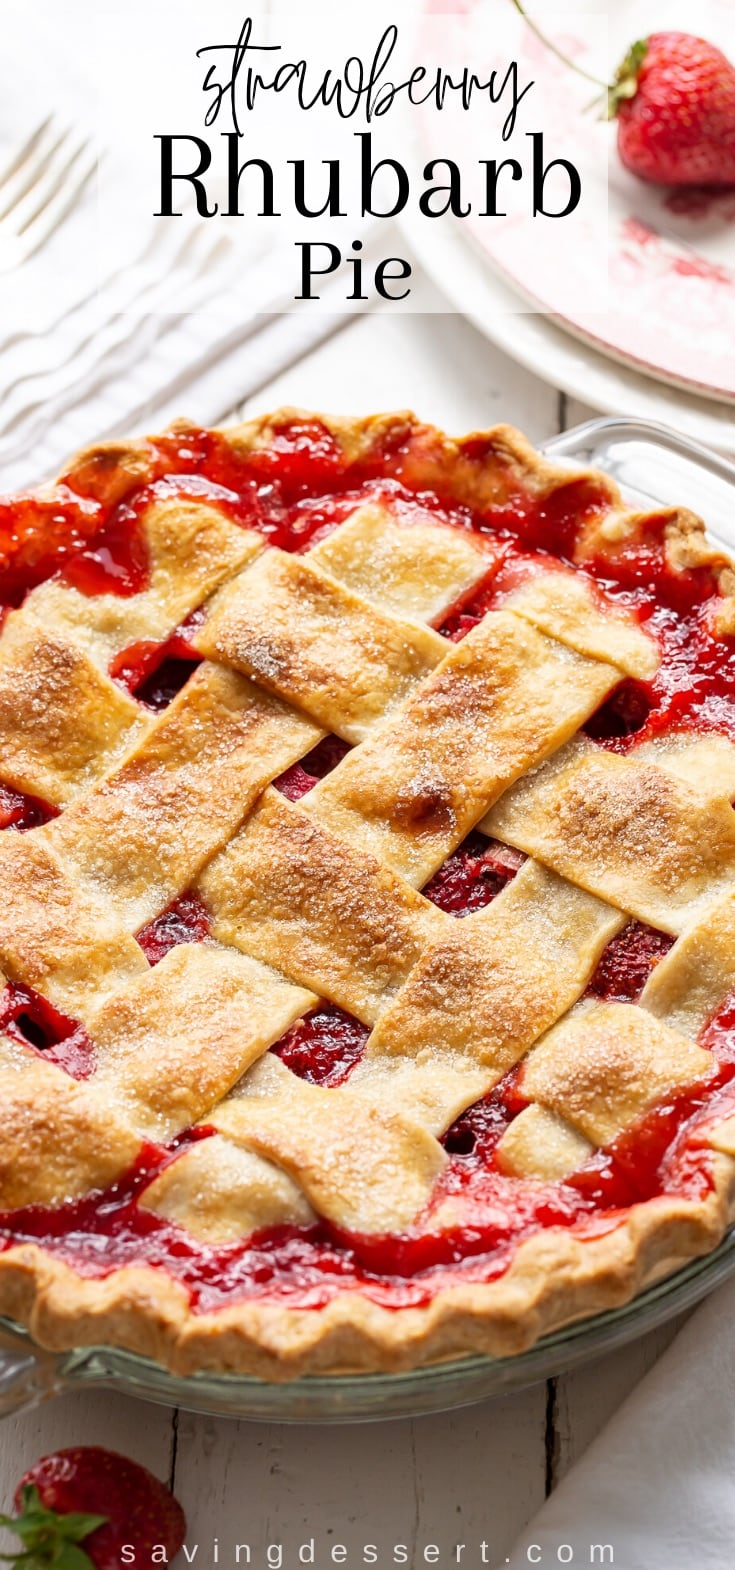 A lattice topped strawberry rhubarb pie with loads of red juices between the crust